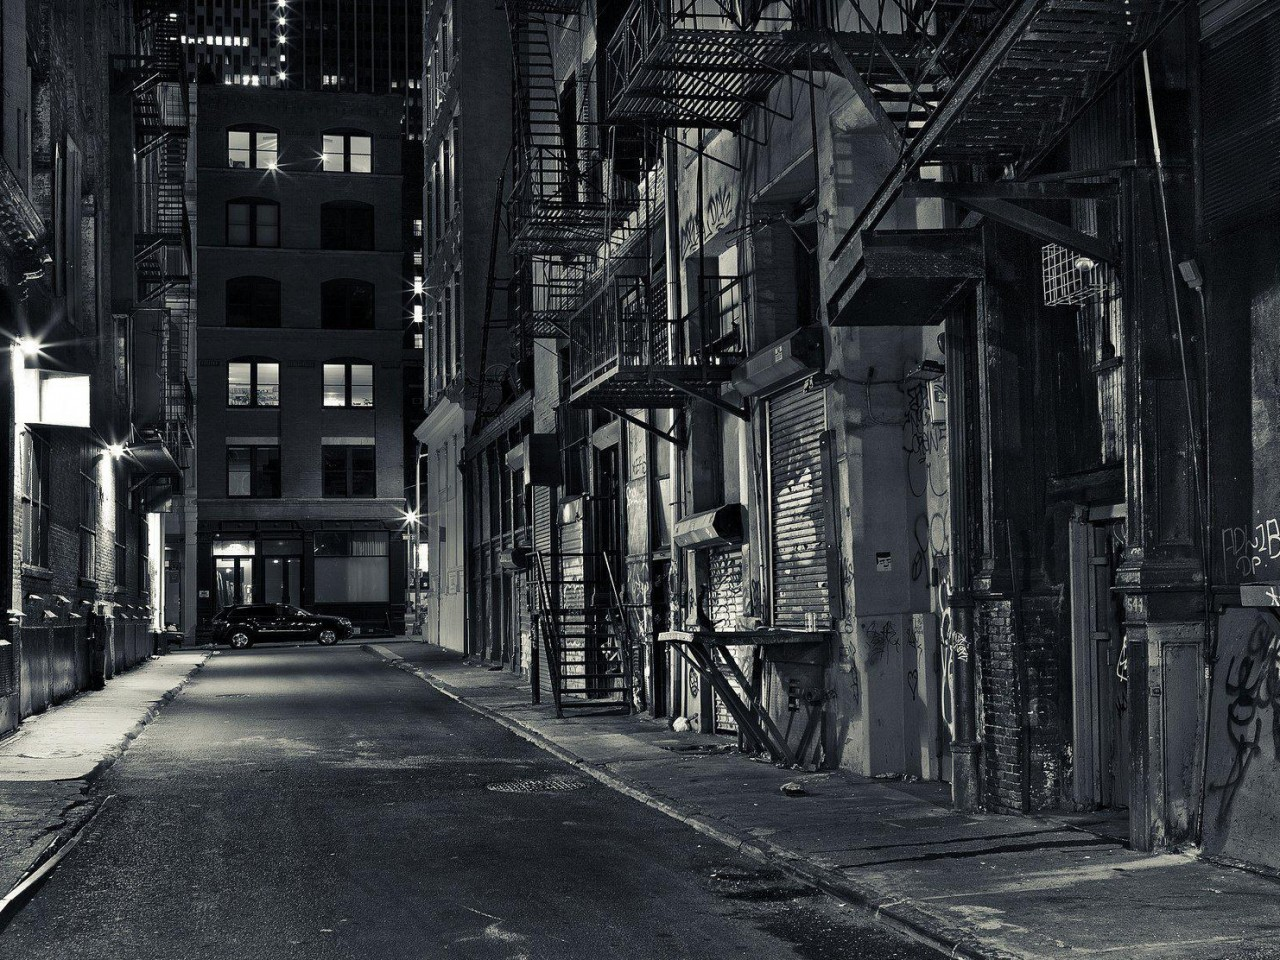 Ghetto Street Backgrounds Pictures to Pin 1280x960